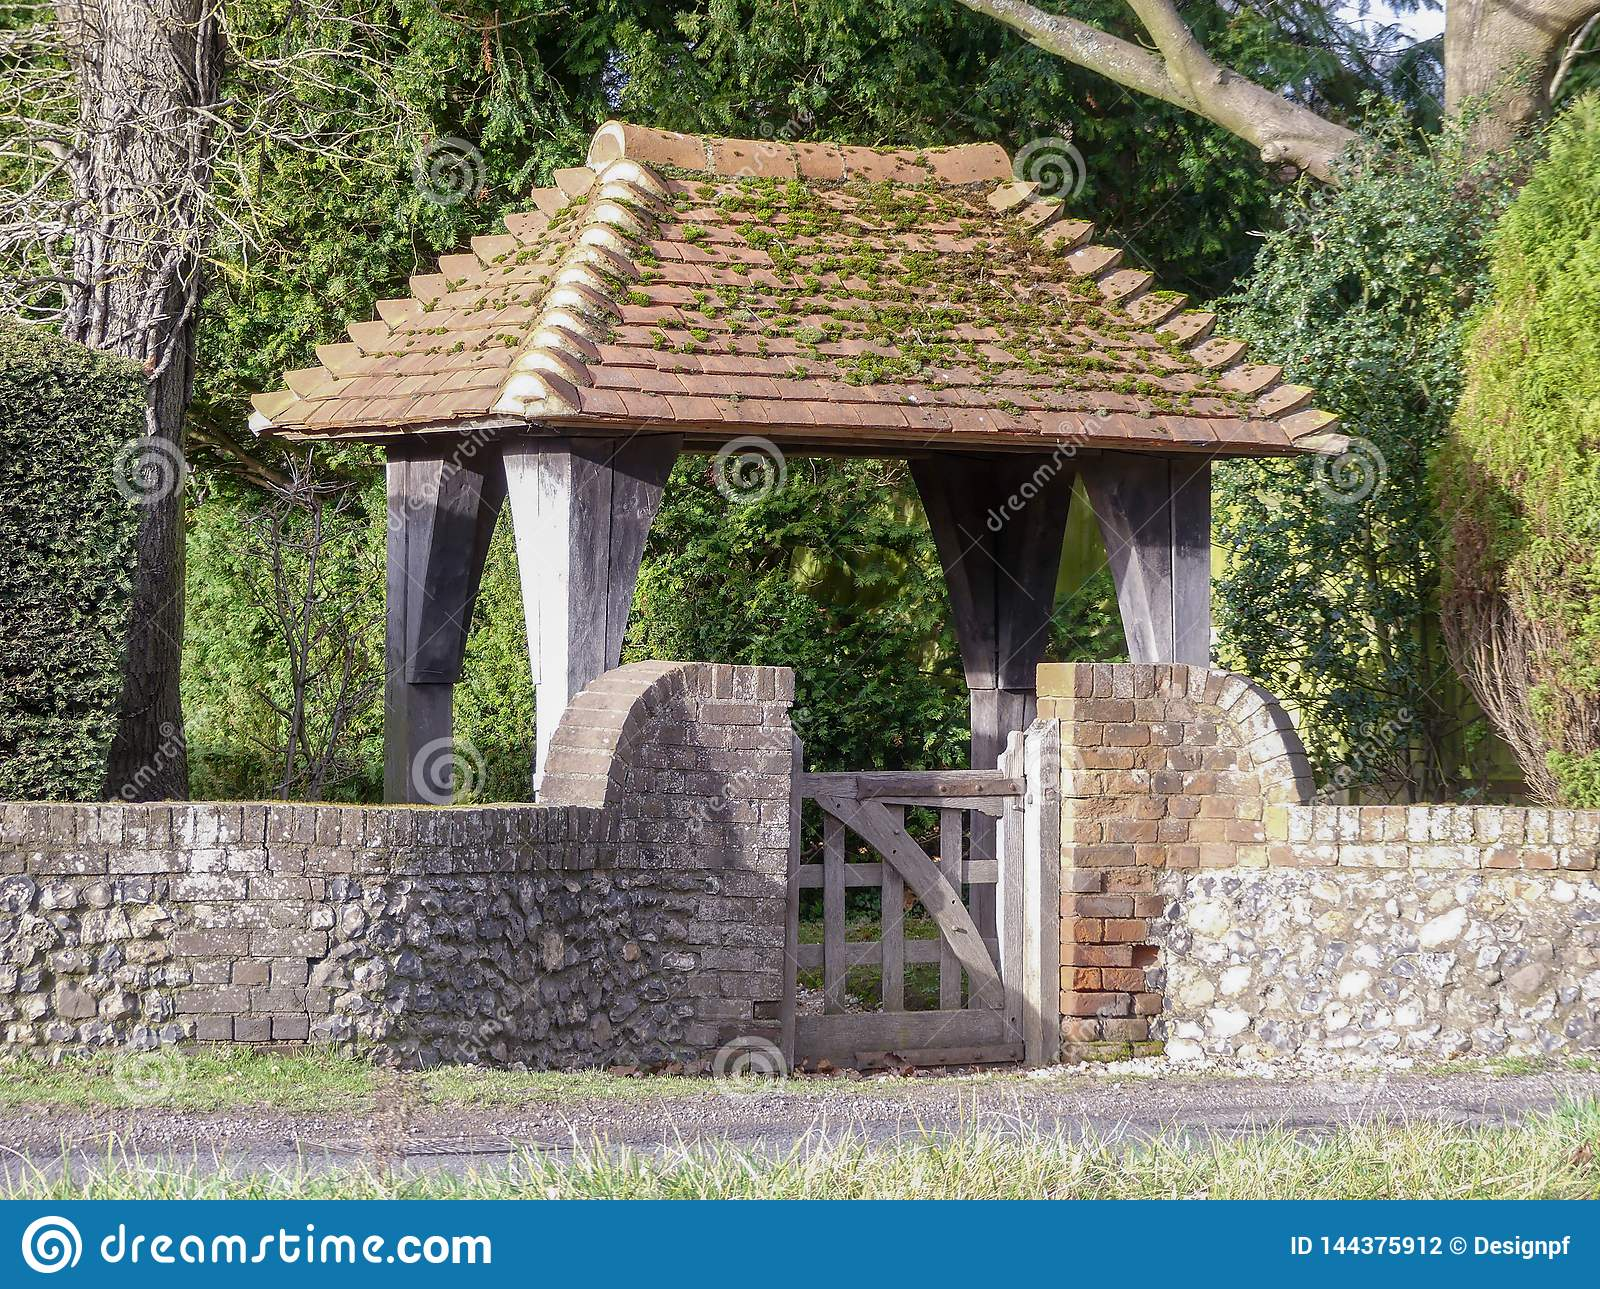 Lych gate style entrance to country house